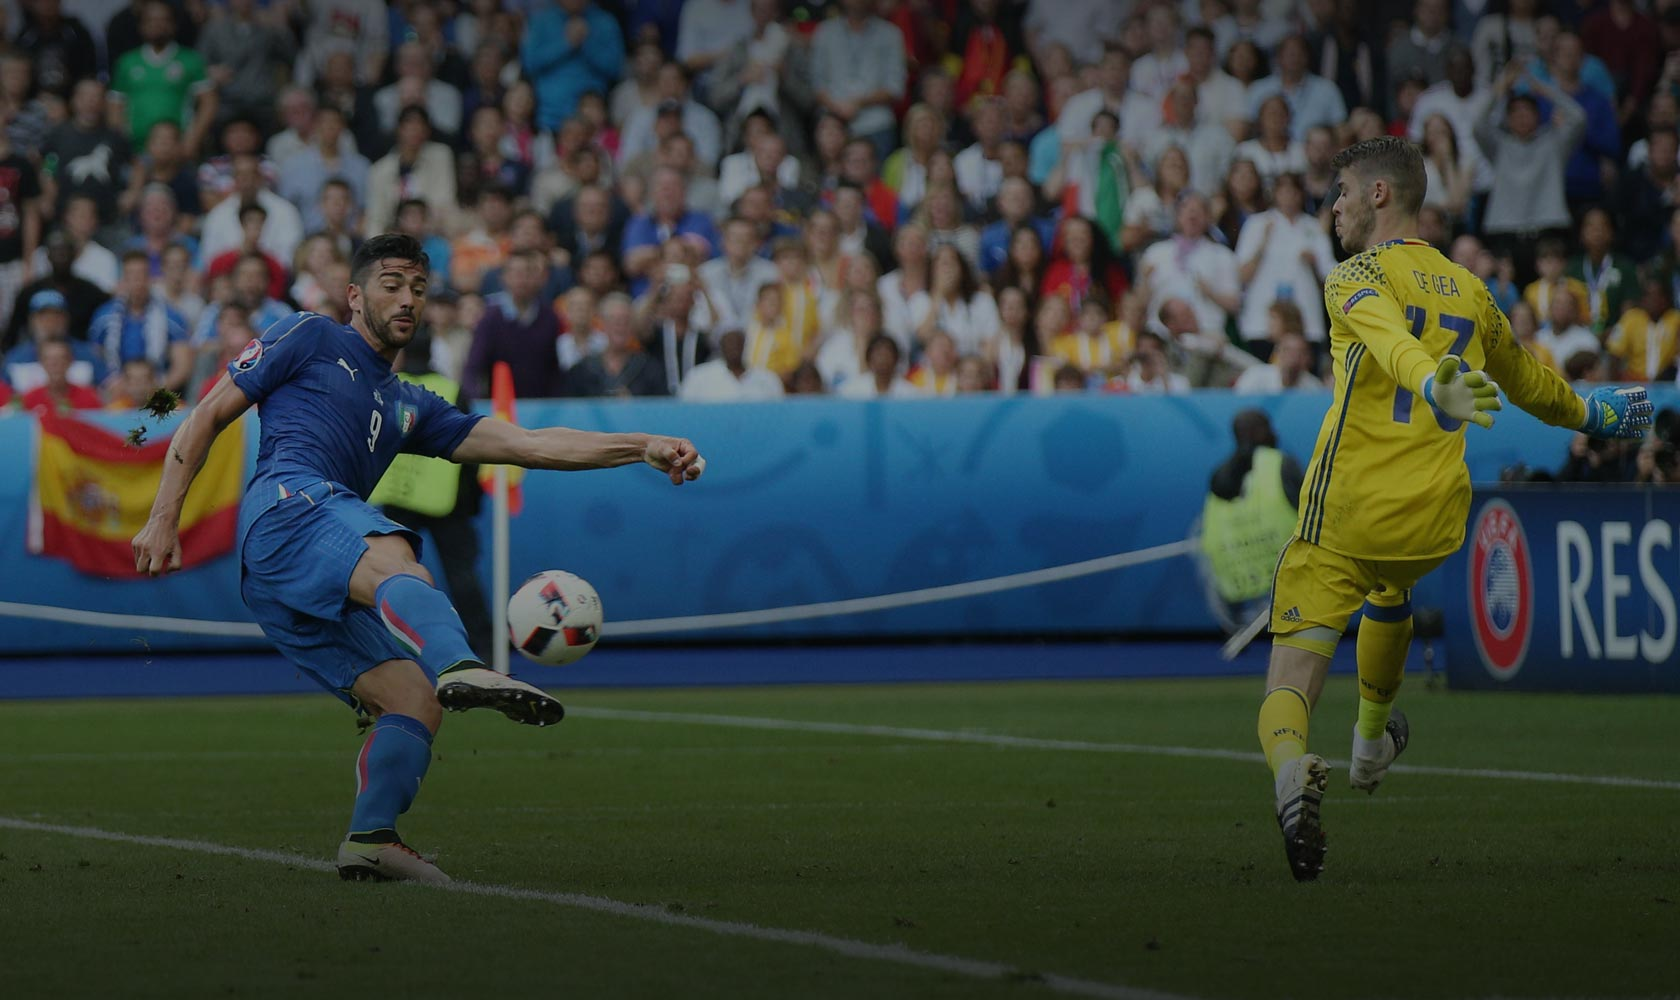 Graziano Pelle scores for Italy against Spain, Euro 2016. Photo: m.iacobucci.tiscali.it